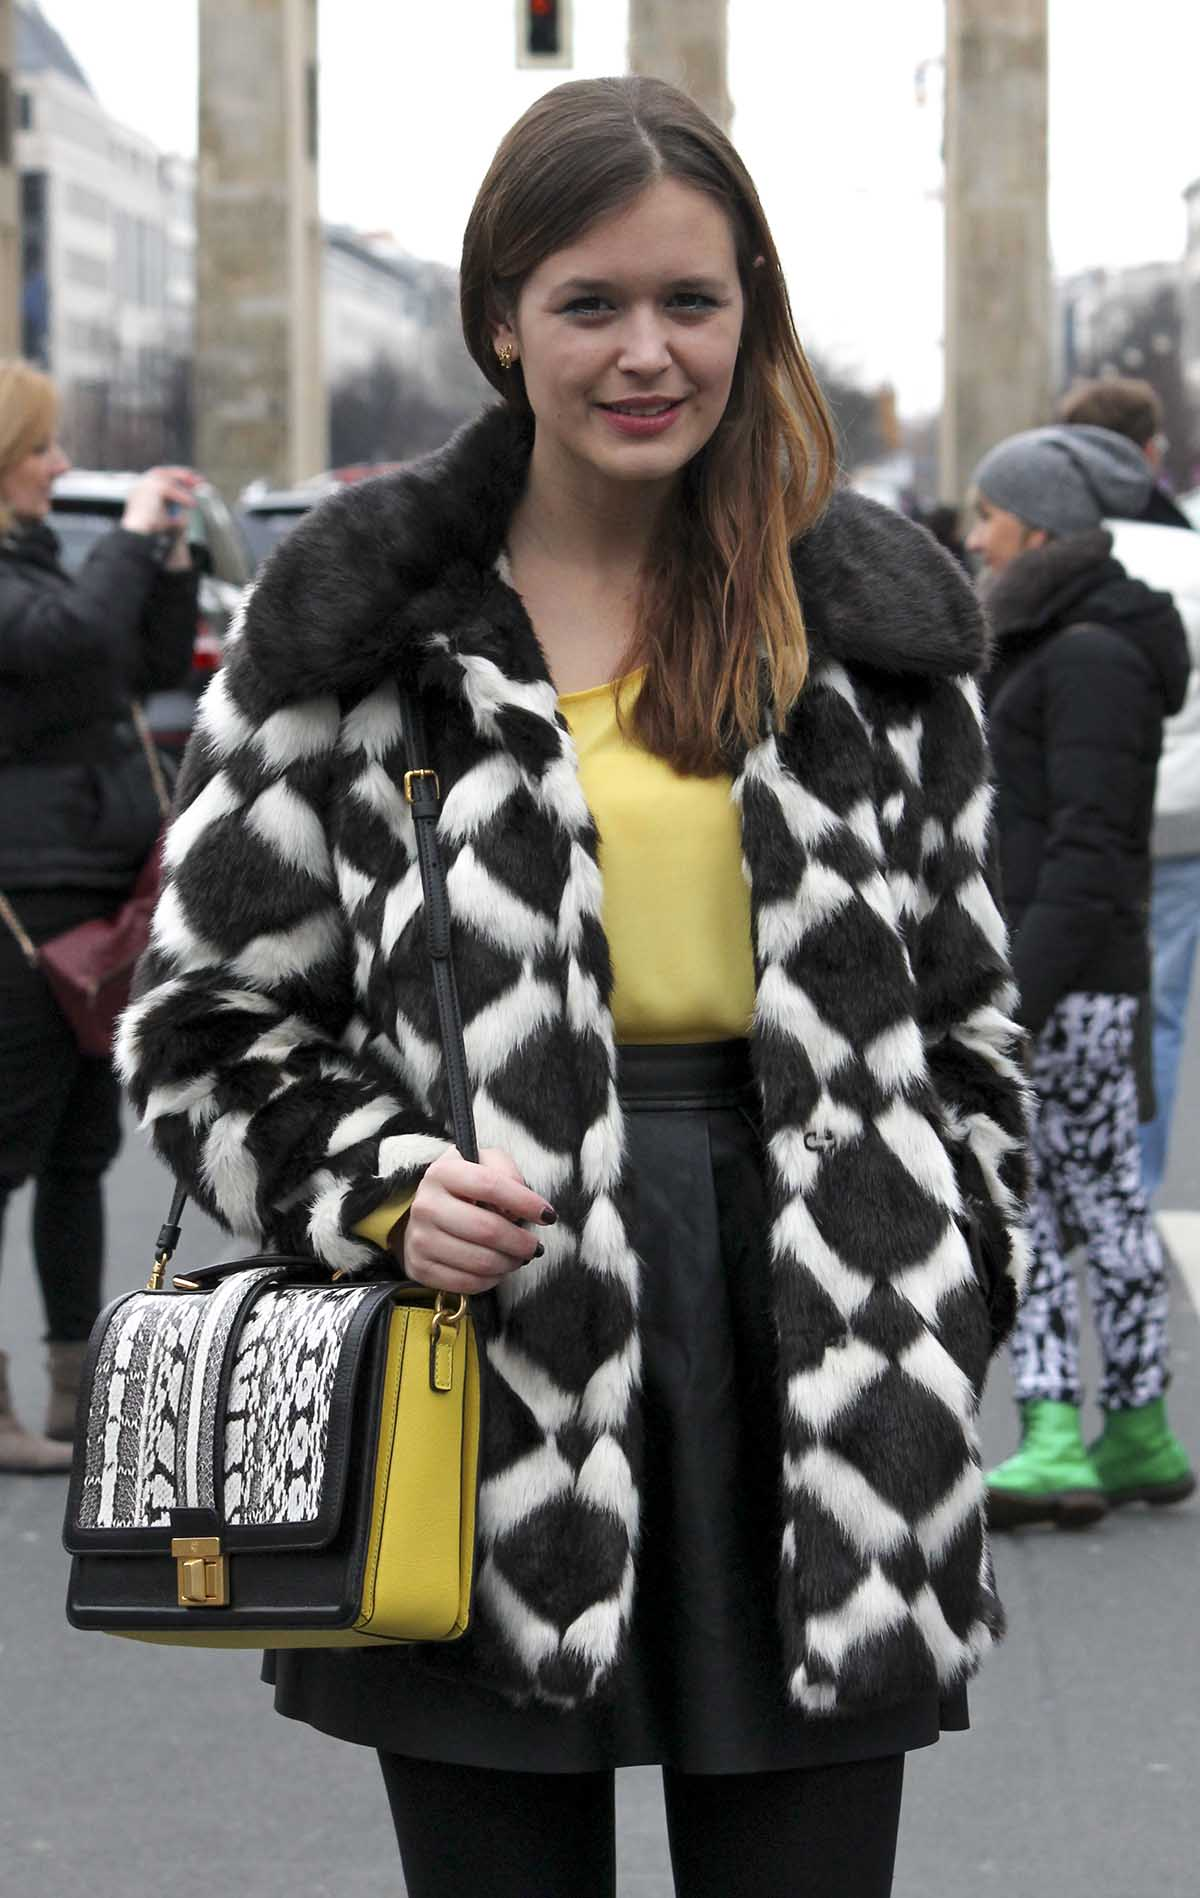 MM_Streetstyle_Tag2_04